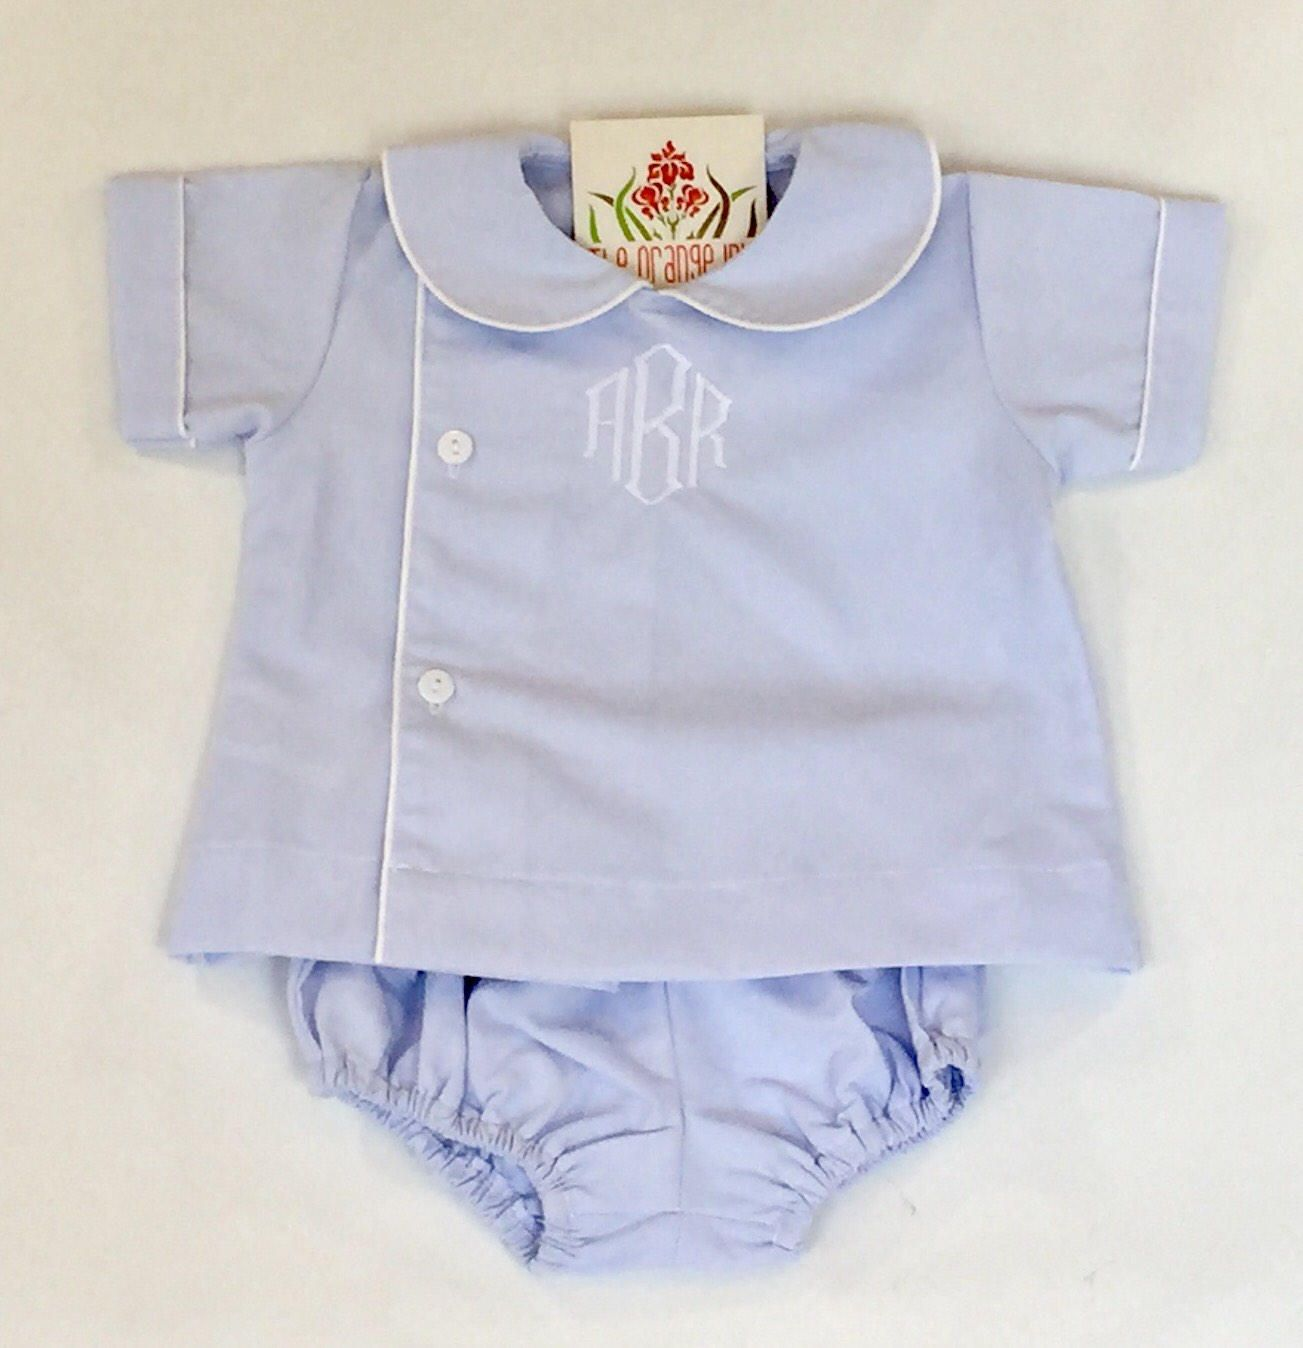 Monogrammed boys diaper set personalized baby gifts personalized monogrammed boys diaper set personalized baby gifts personalized baby outfit baby boy bubble negle Choice Image